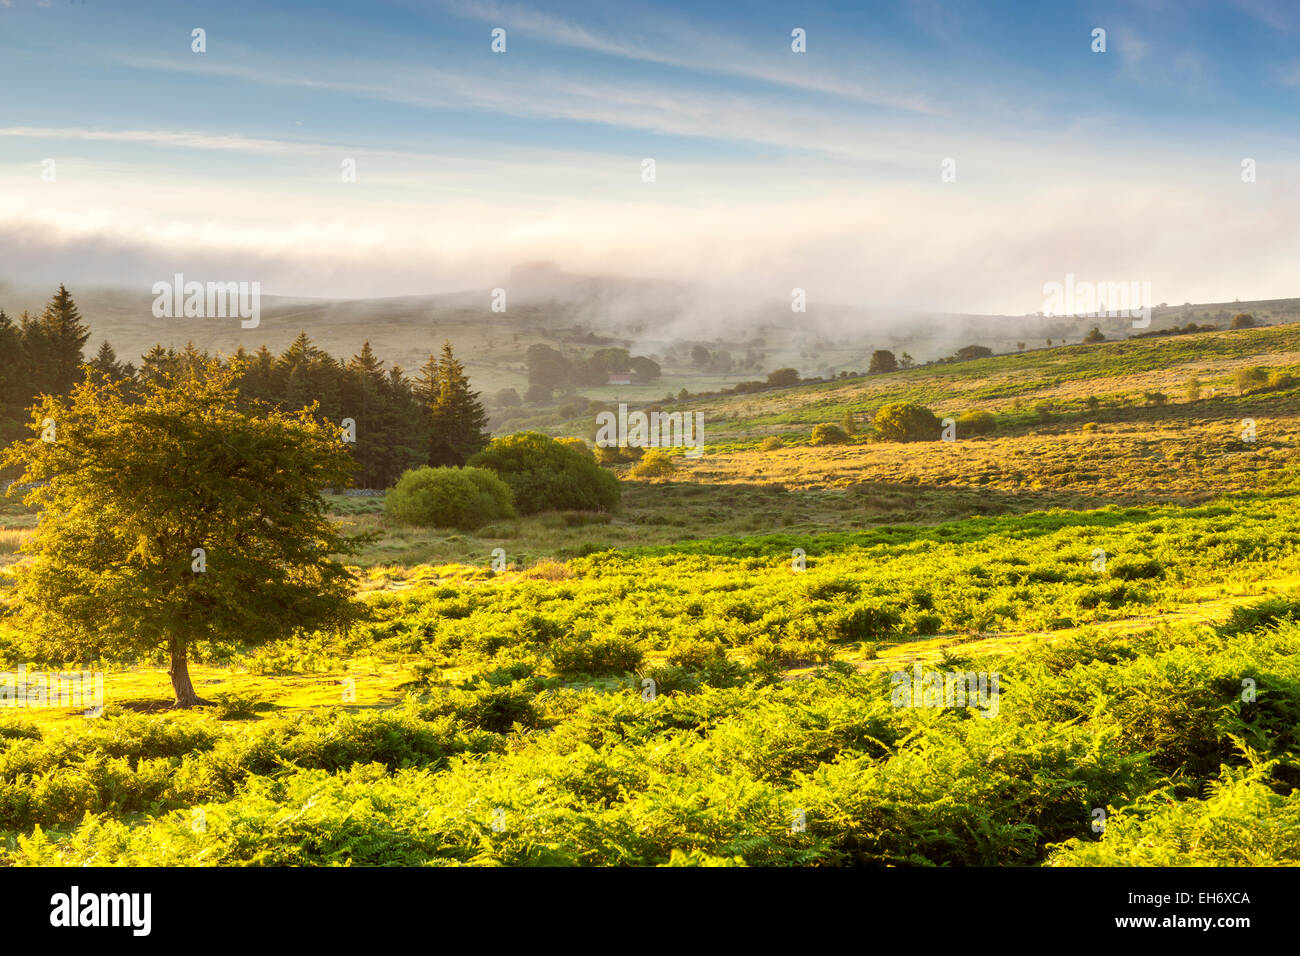 Le parc national du Dartmoor, Holwell, Devon, Angleterre, Royaume-Uni, Europe Photo Stock